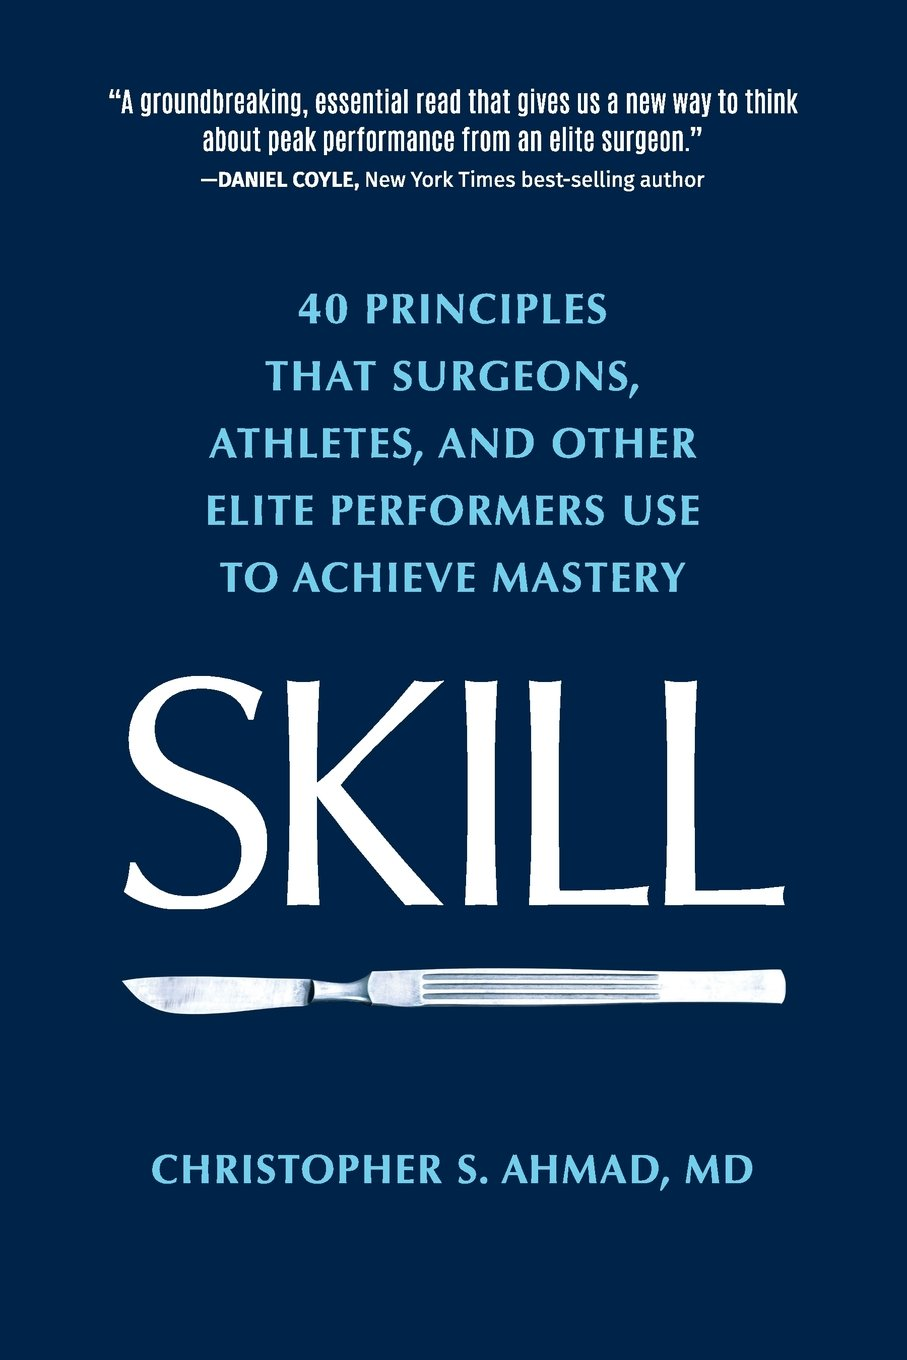 SKILL principles surgeons athletes performers product image